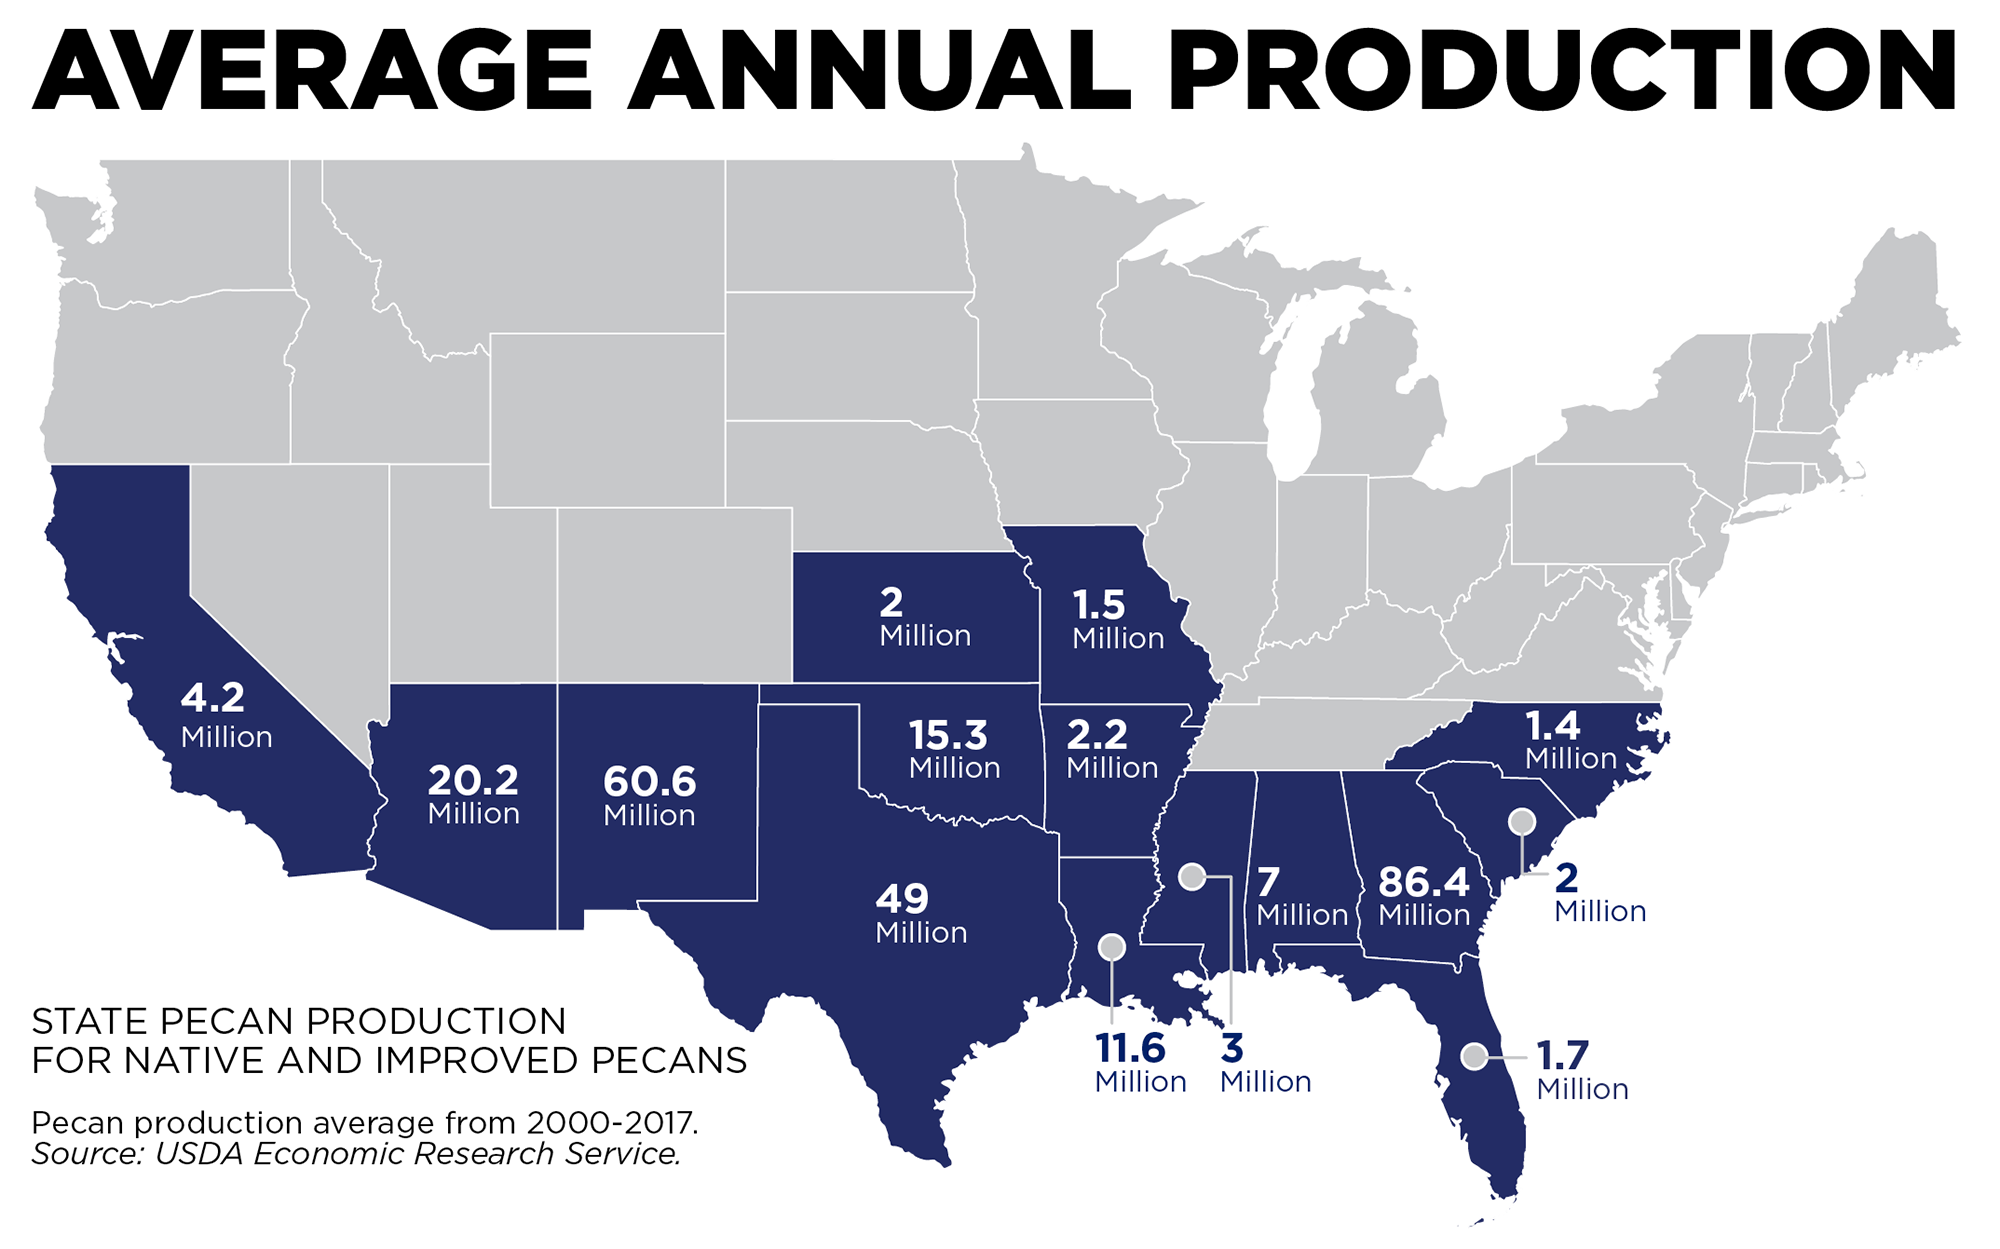 Infographic - Average Annual Production: State Pecan Production for Native and Improved Pecans - Pecan production average from 2000-2017. Source USDA Economic Research Service.